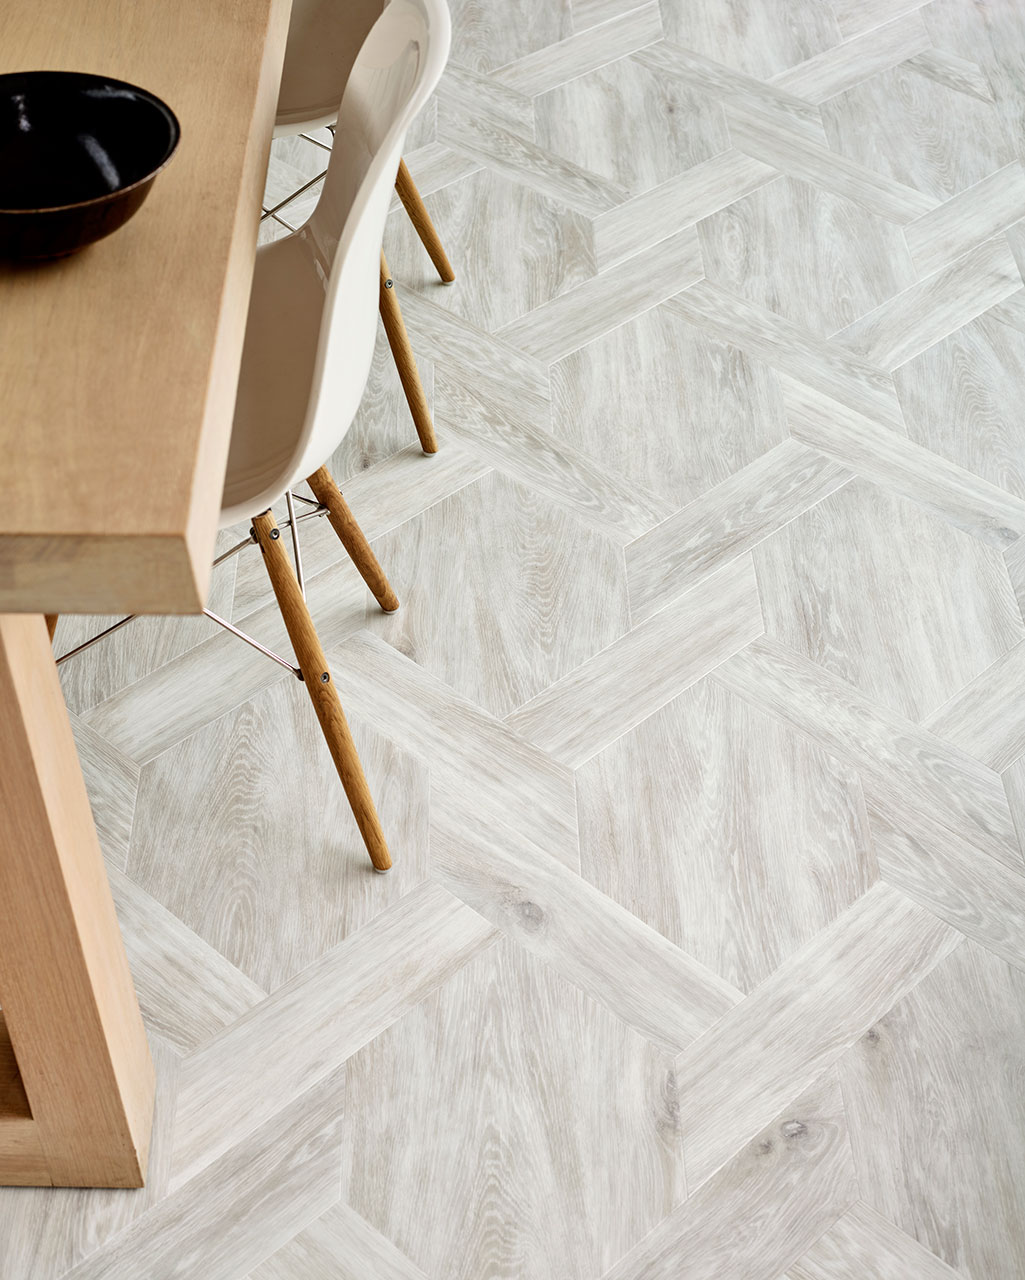 DC266 - Washed - features Amtico Signature White Wash Wood in the Castel Weave pattern